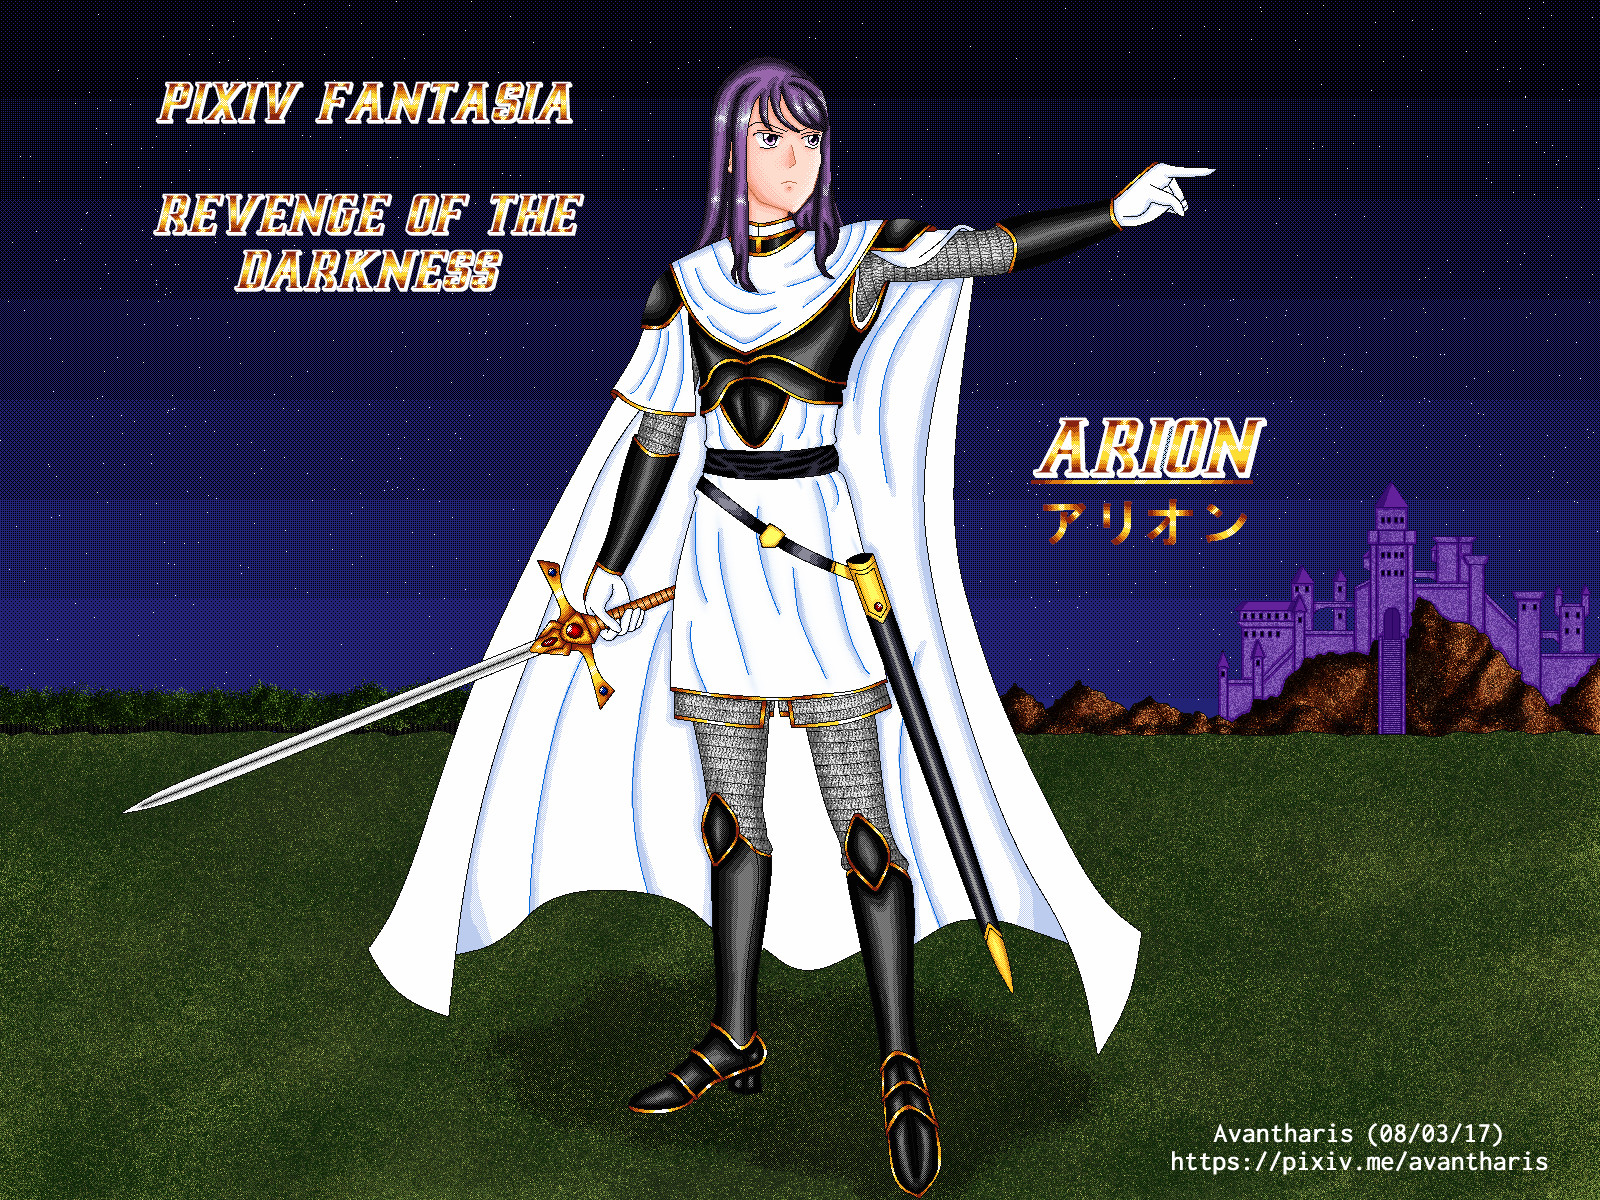 Character - 5 - This one was made for the Pixiv Fantasia event.